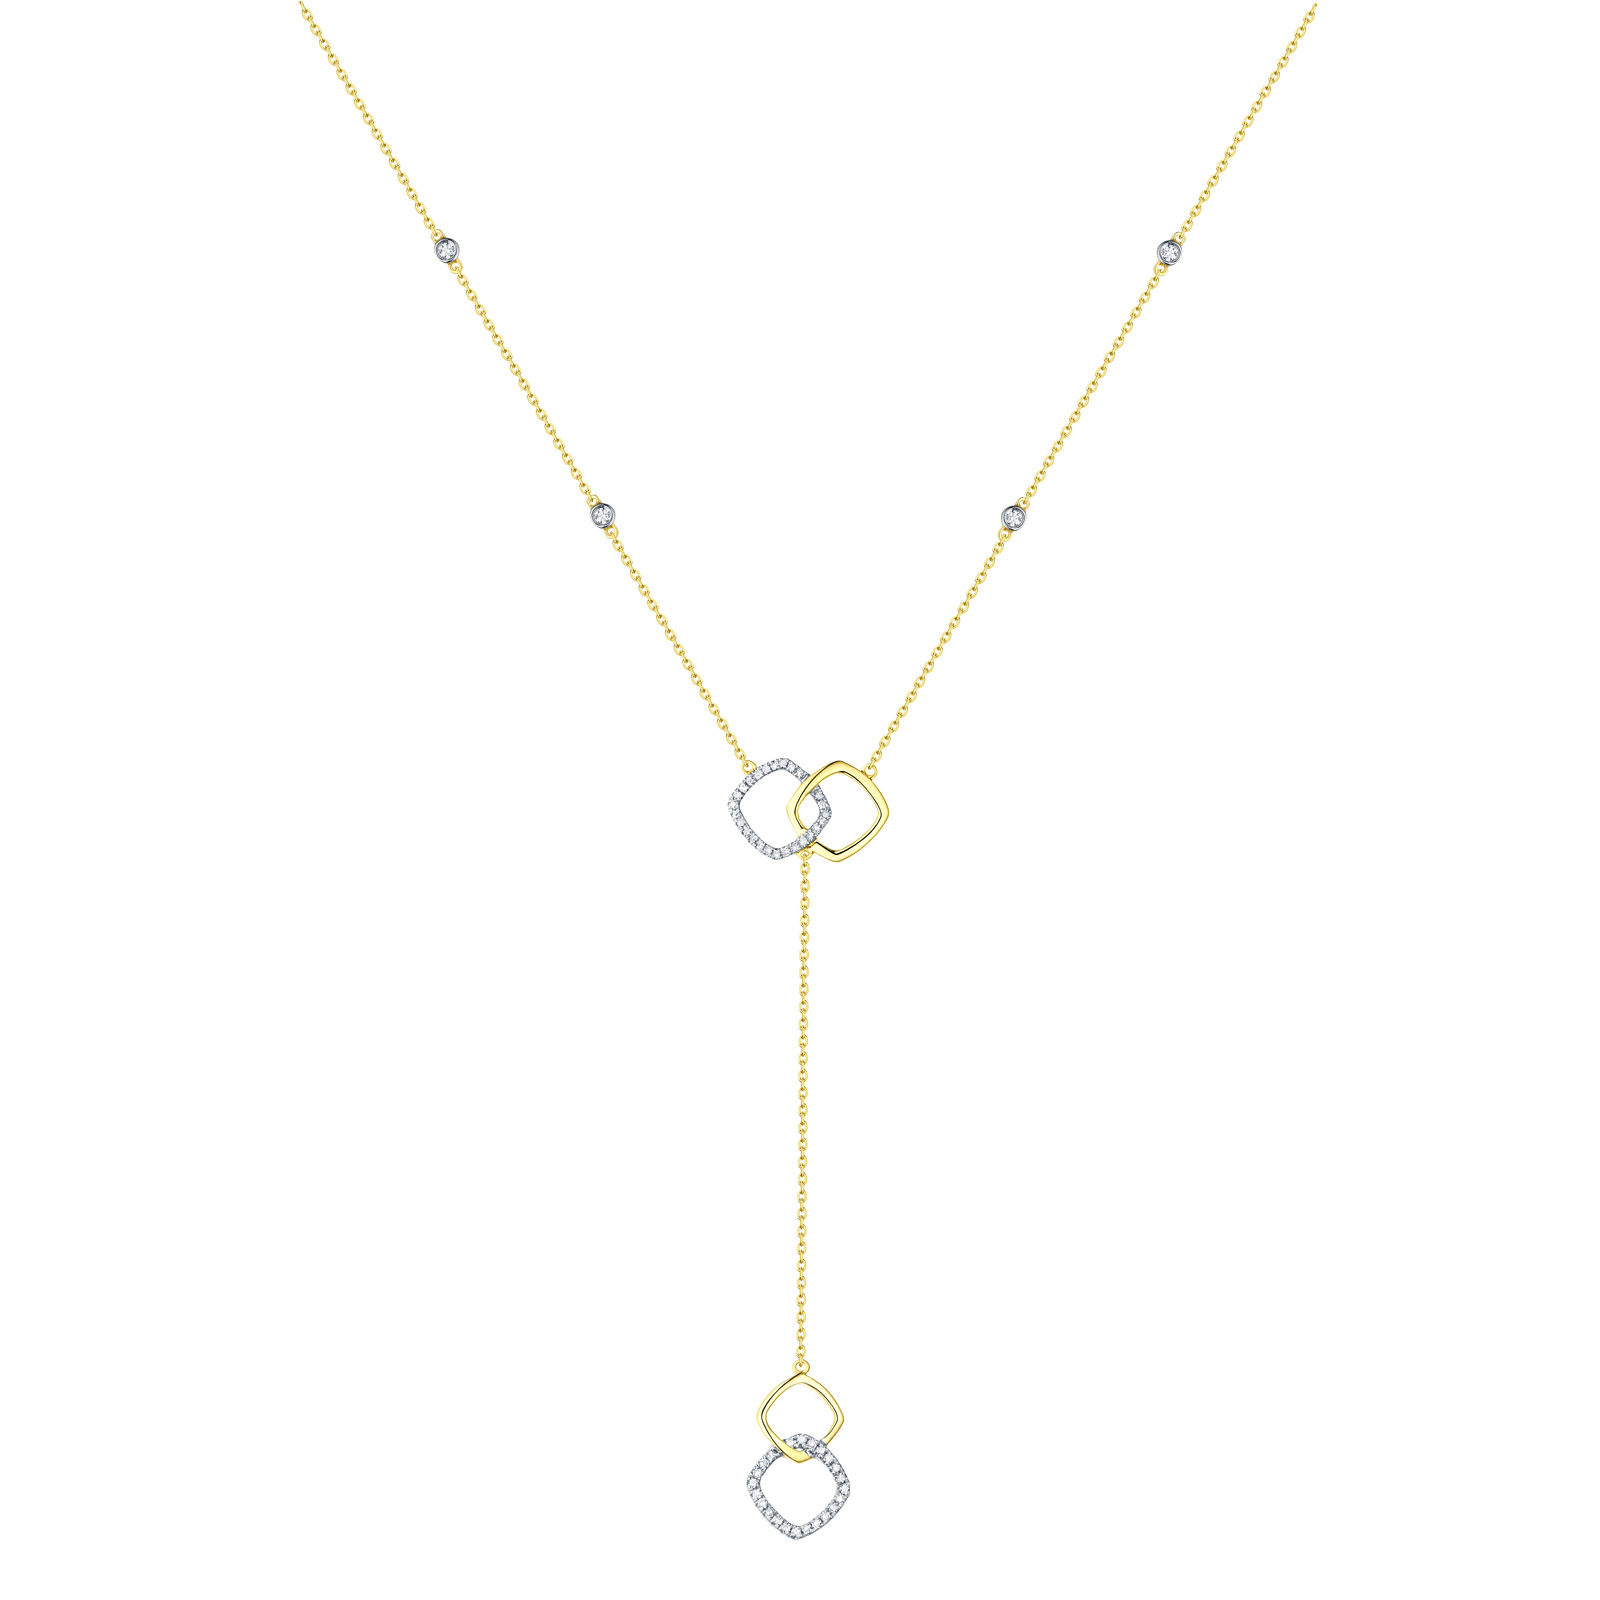 NL25998WHT- 14K Yellow Gold Diamond Necklace, 0.16 TCW